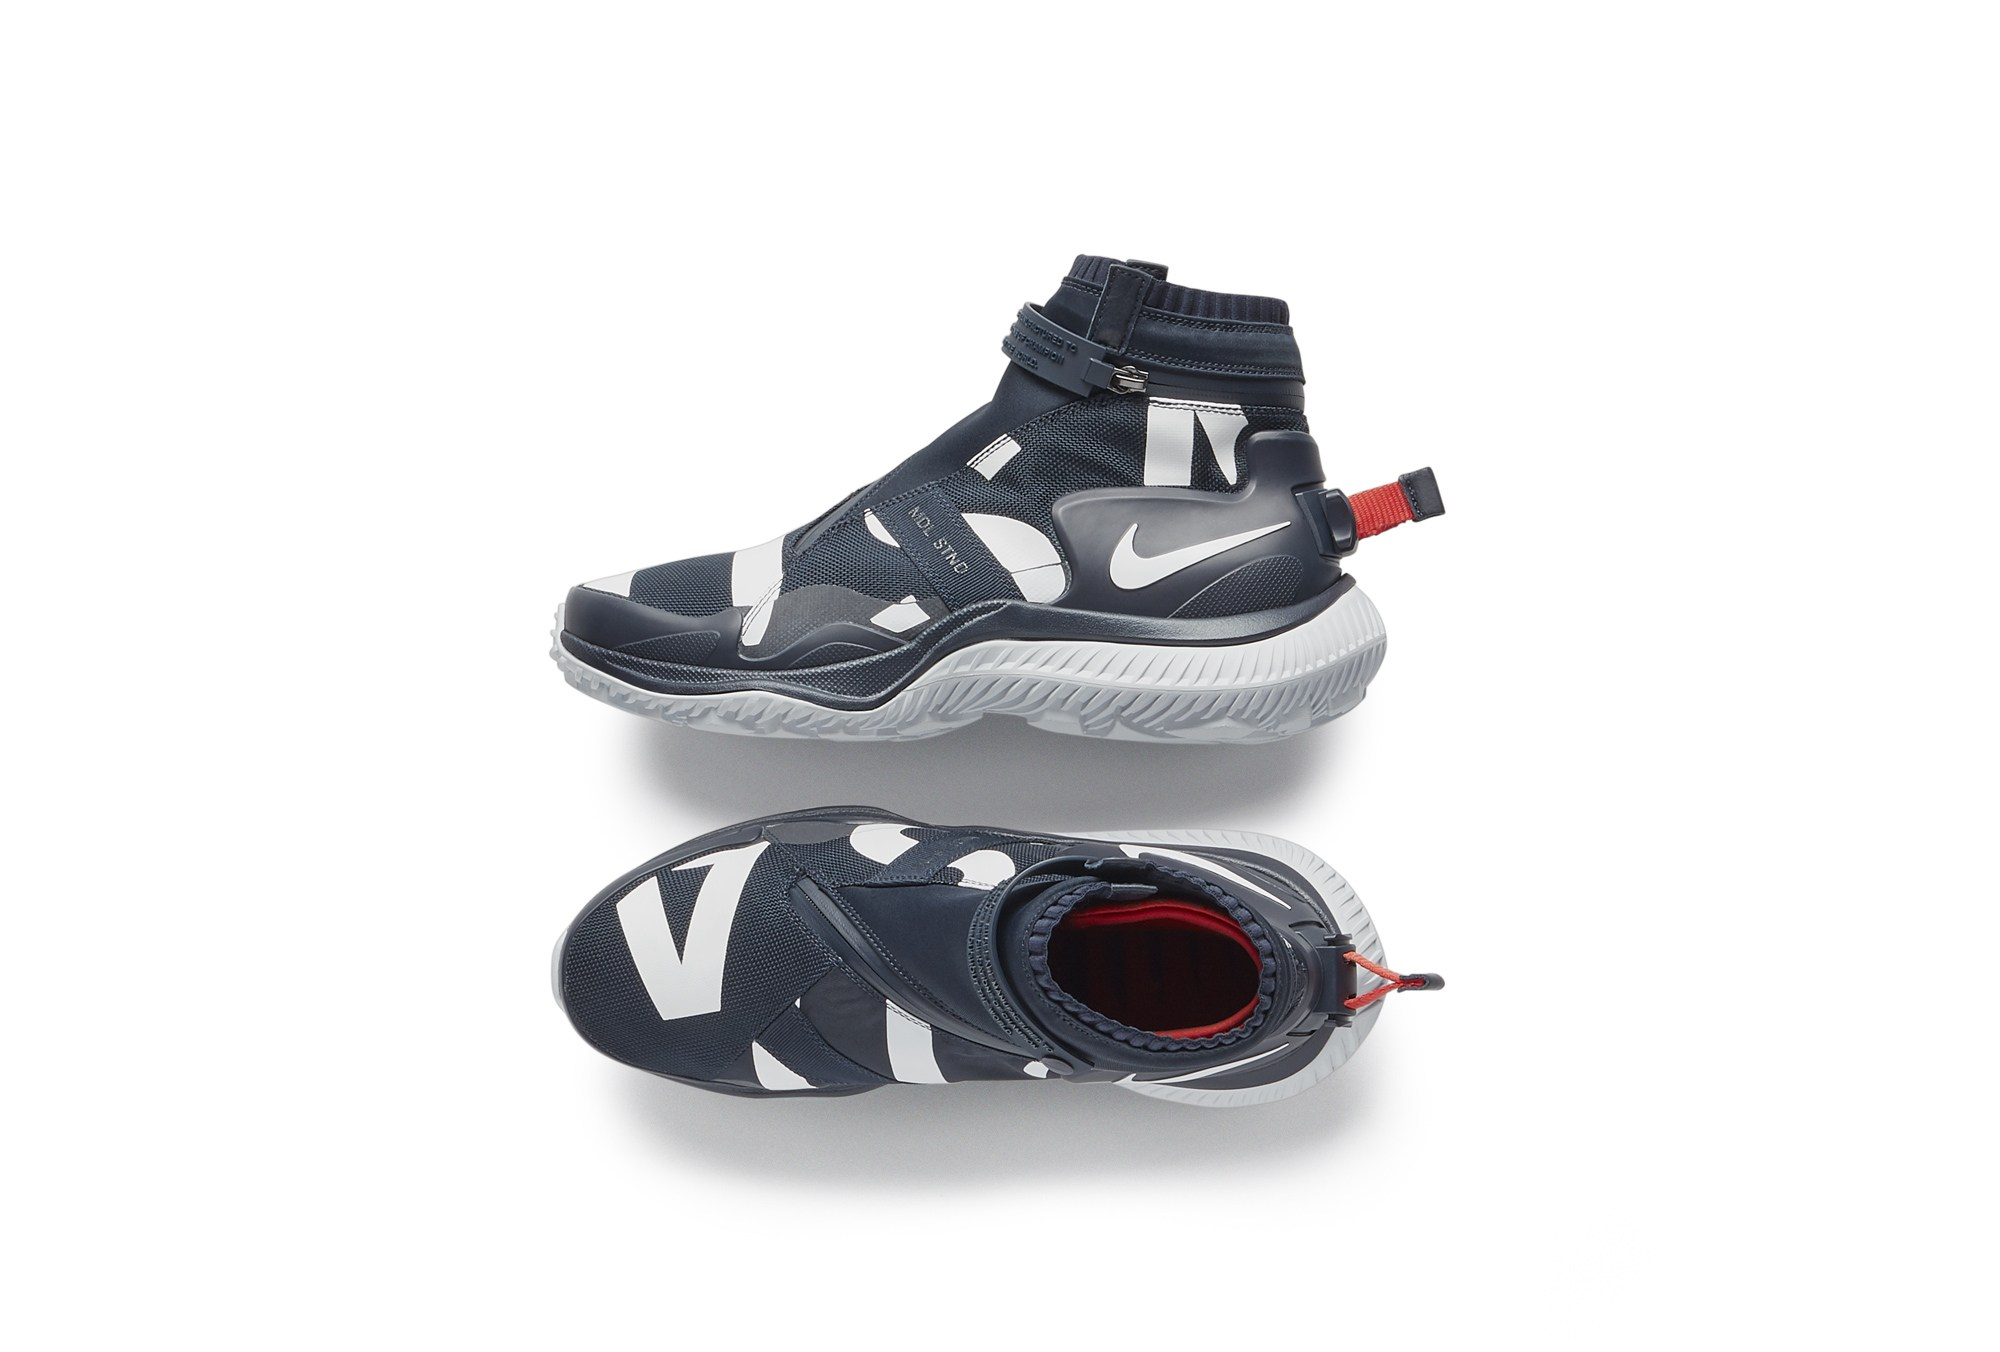 Olympic Men's podium boots by Nike